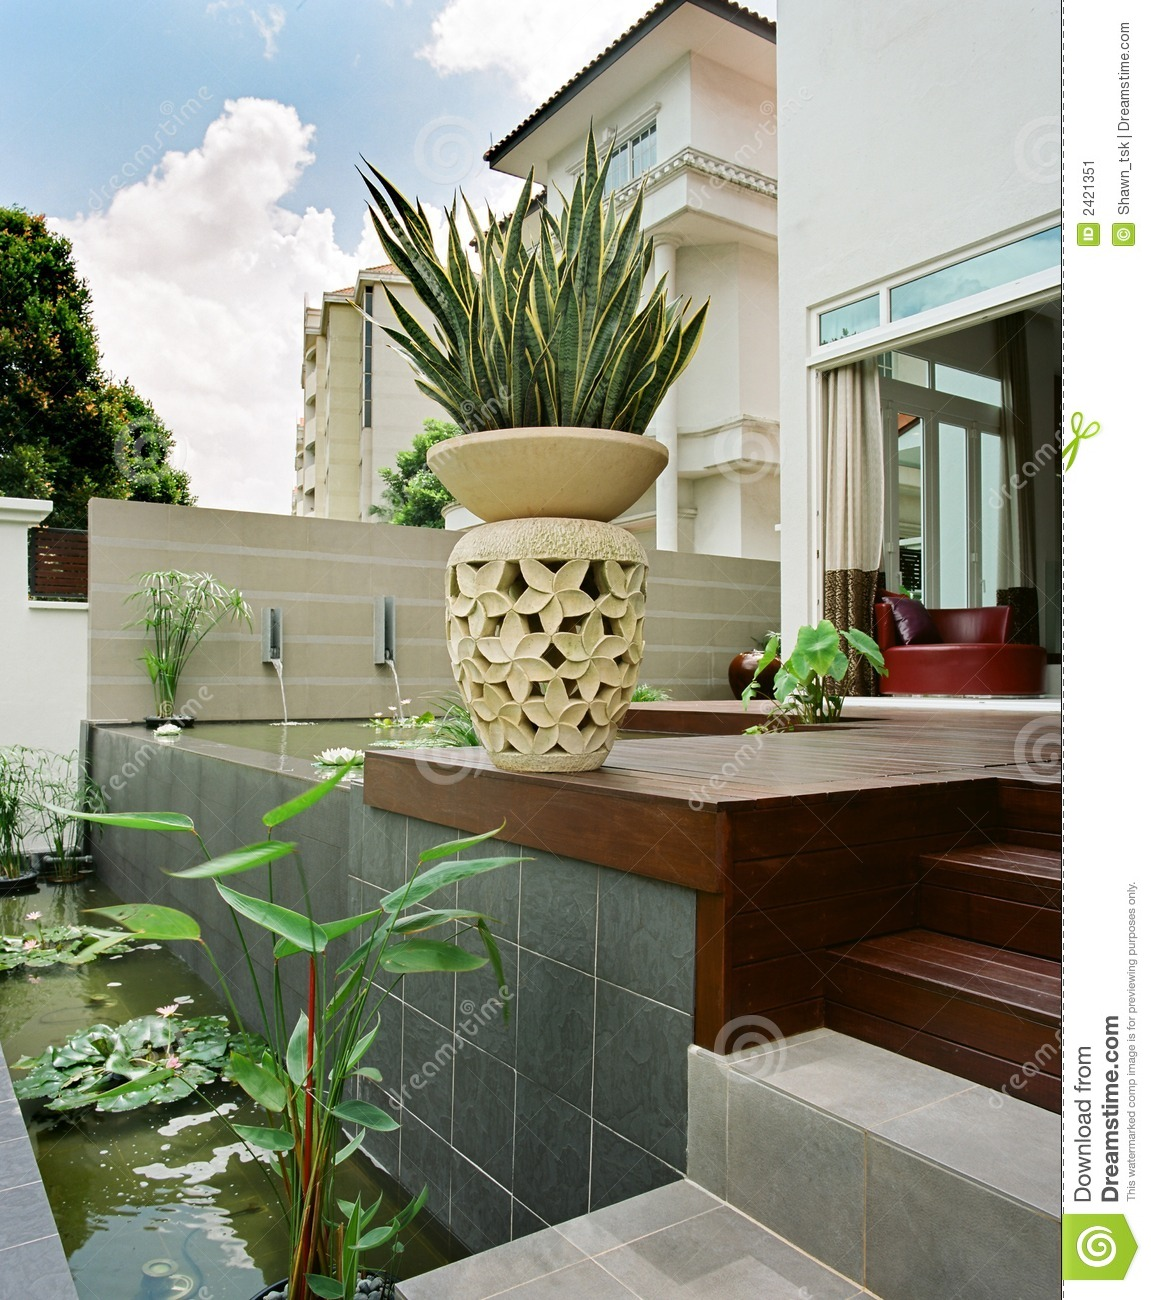 Interior design garden stock image image 2421351 for Interior garden design